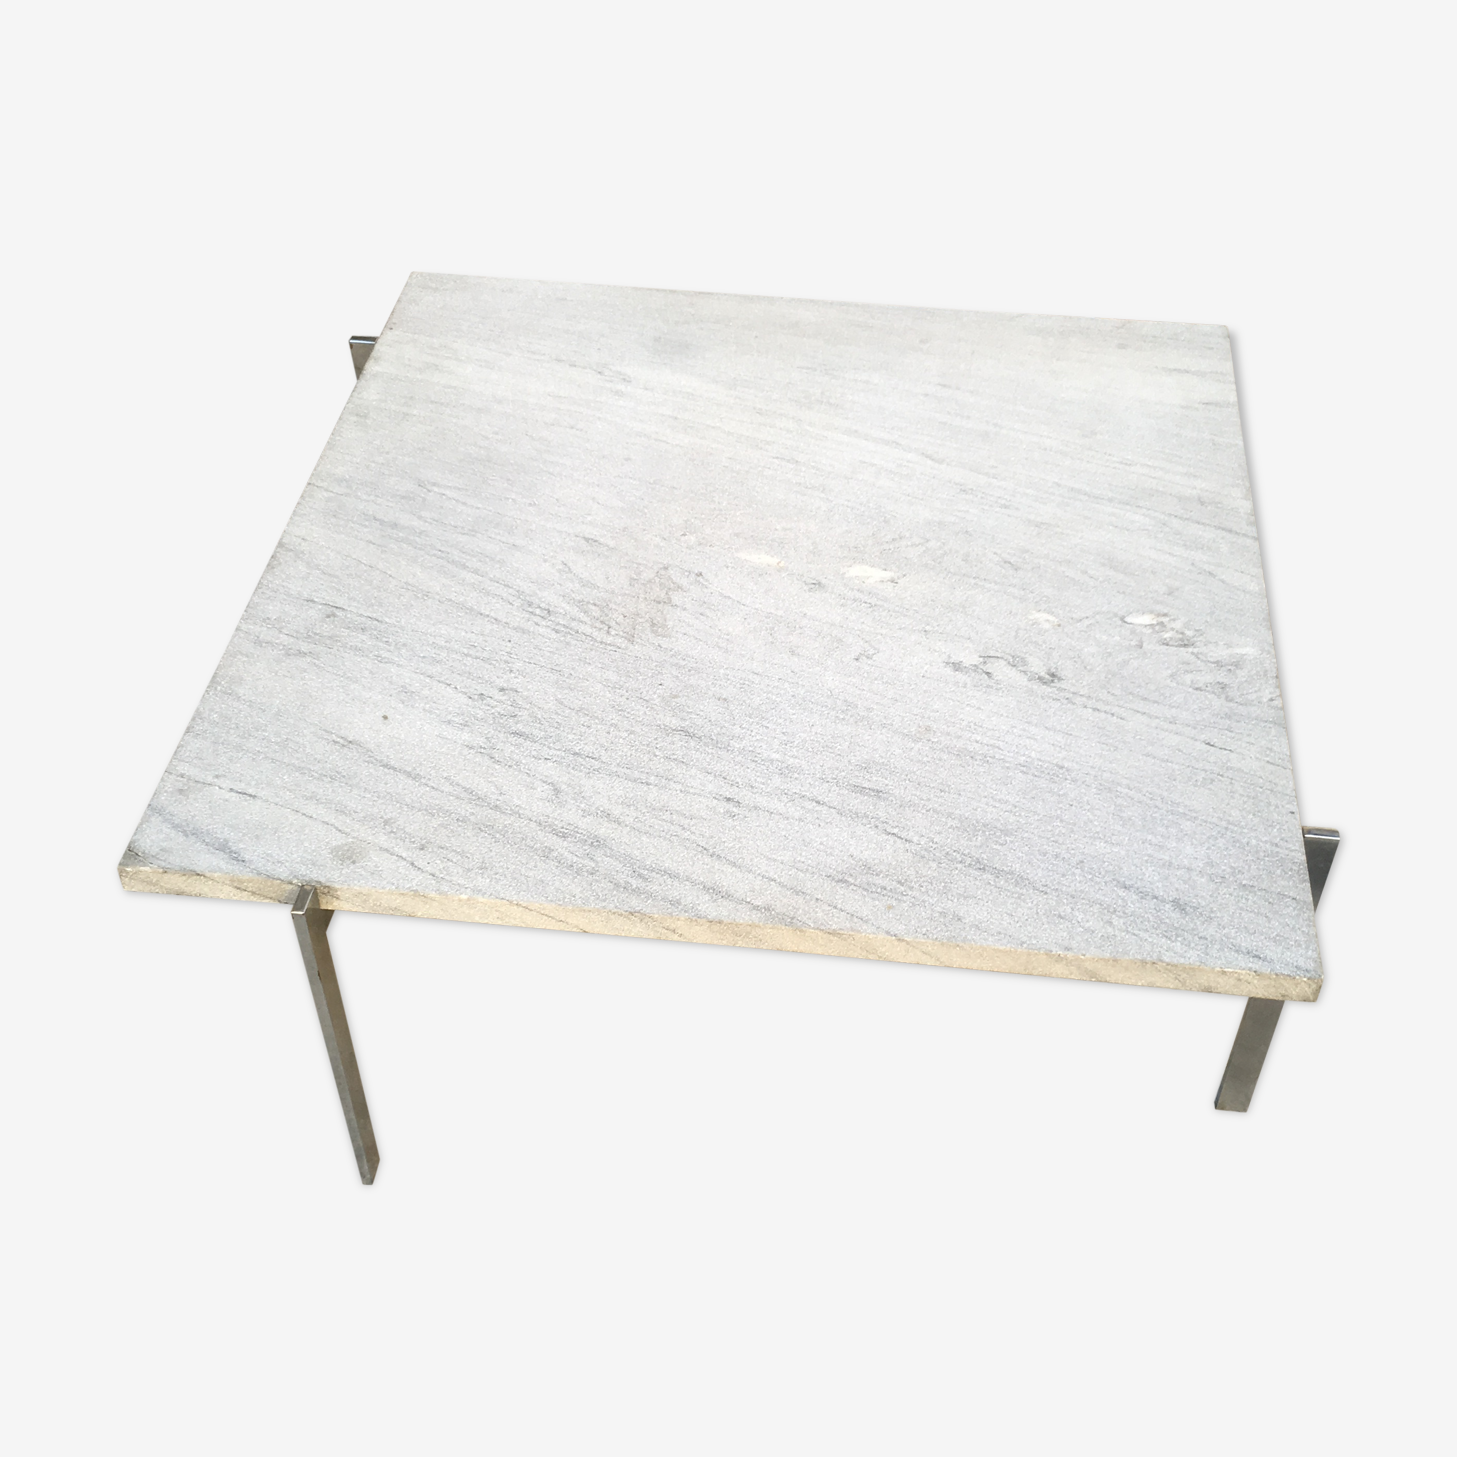 Table basse Poul Kjaerholm PK 61